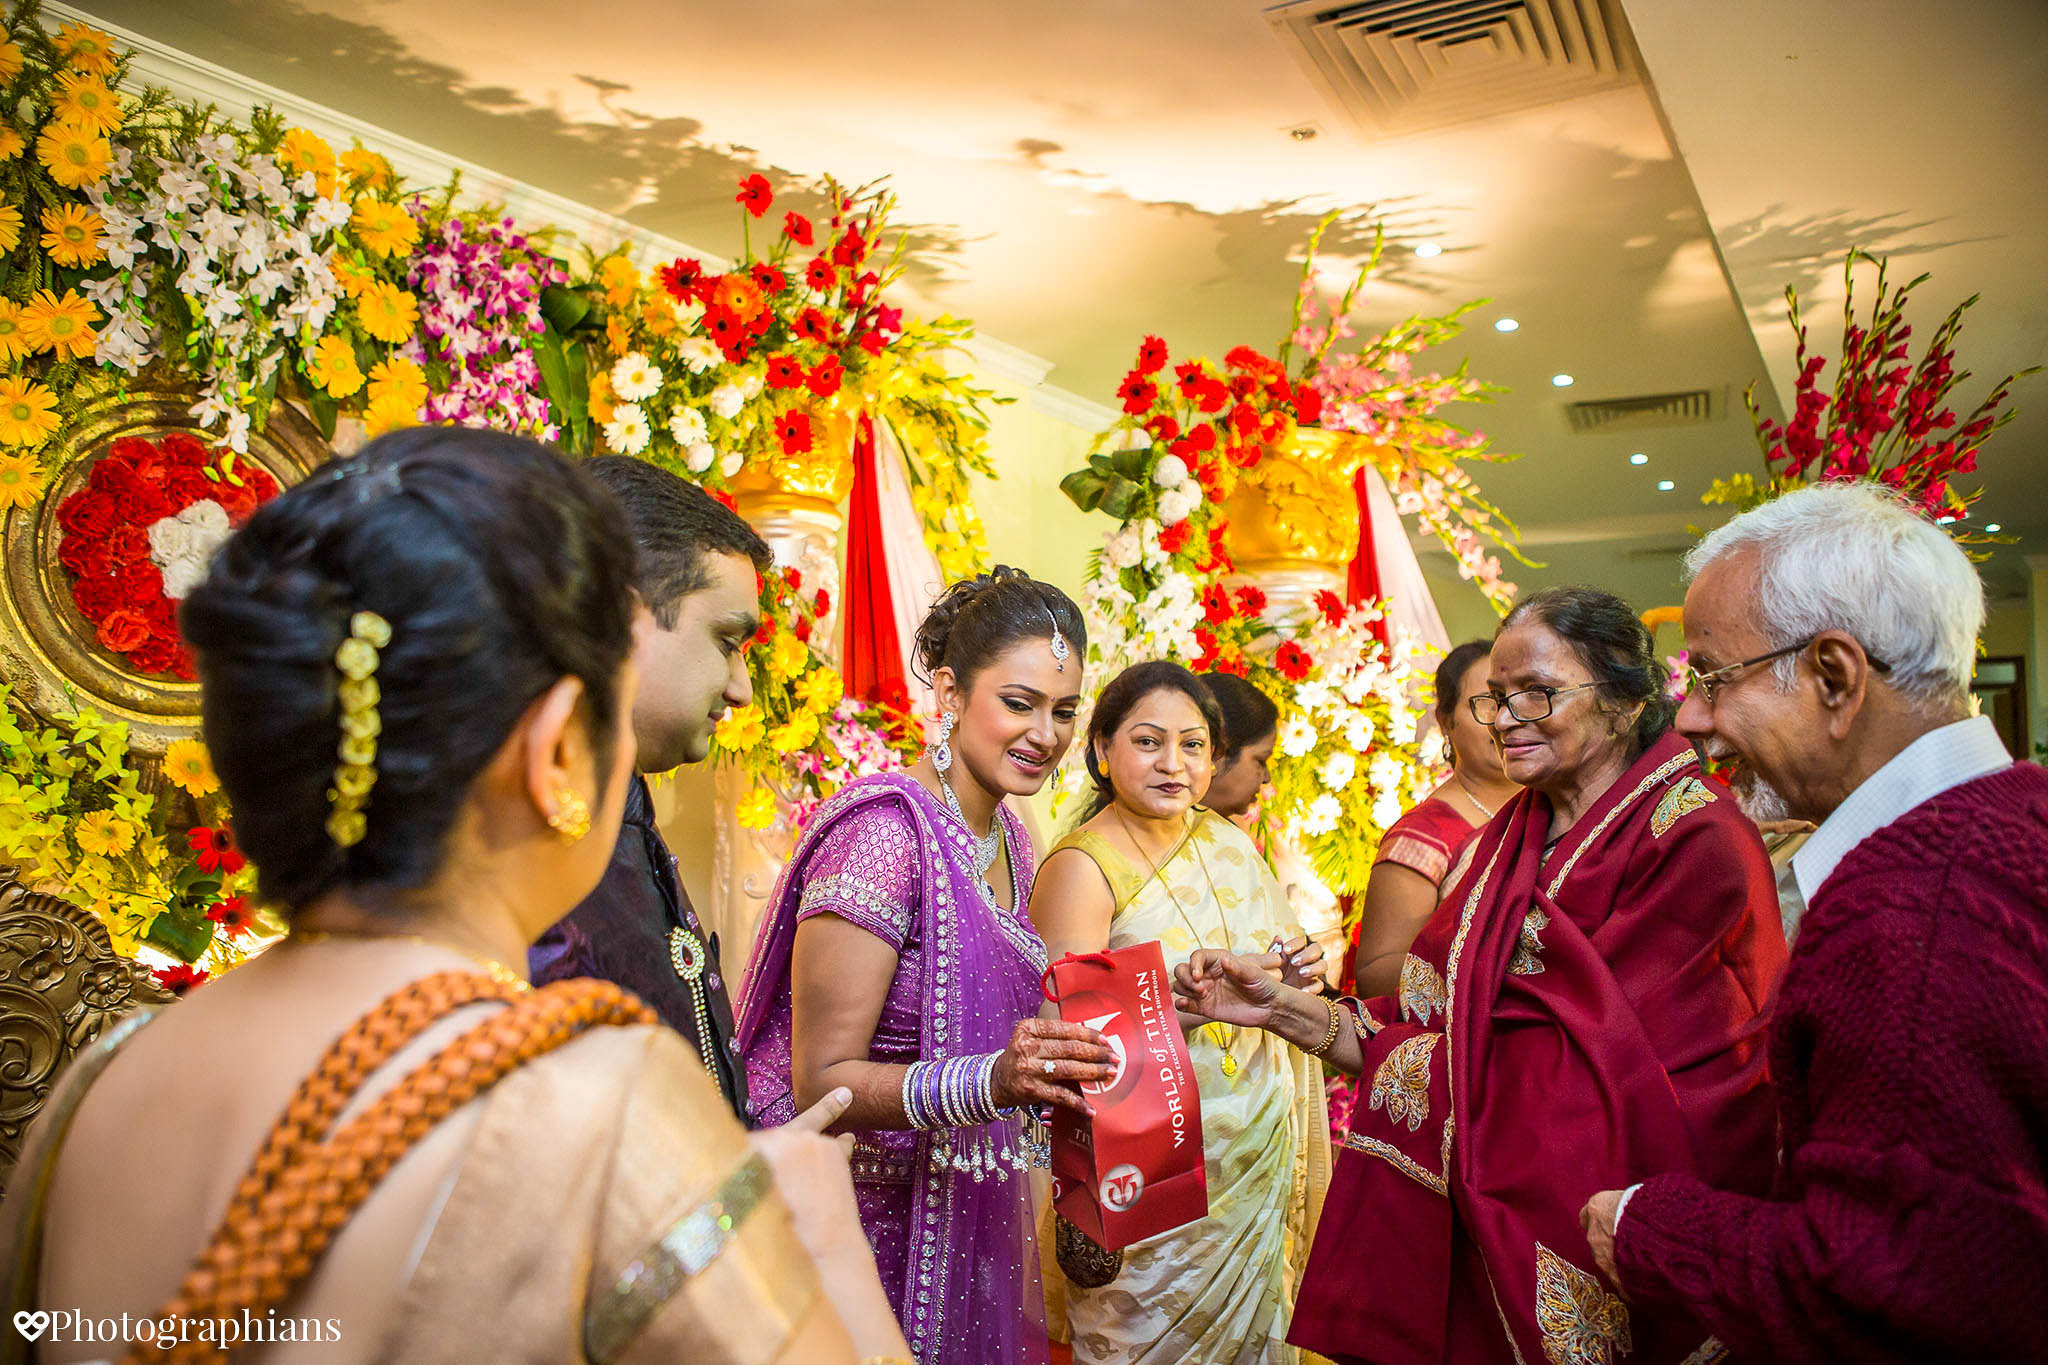 Photographians_Indian_Wedding_Durgapur_050